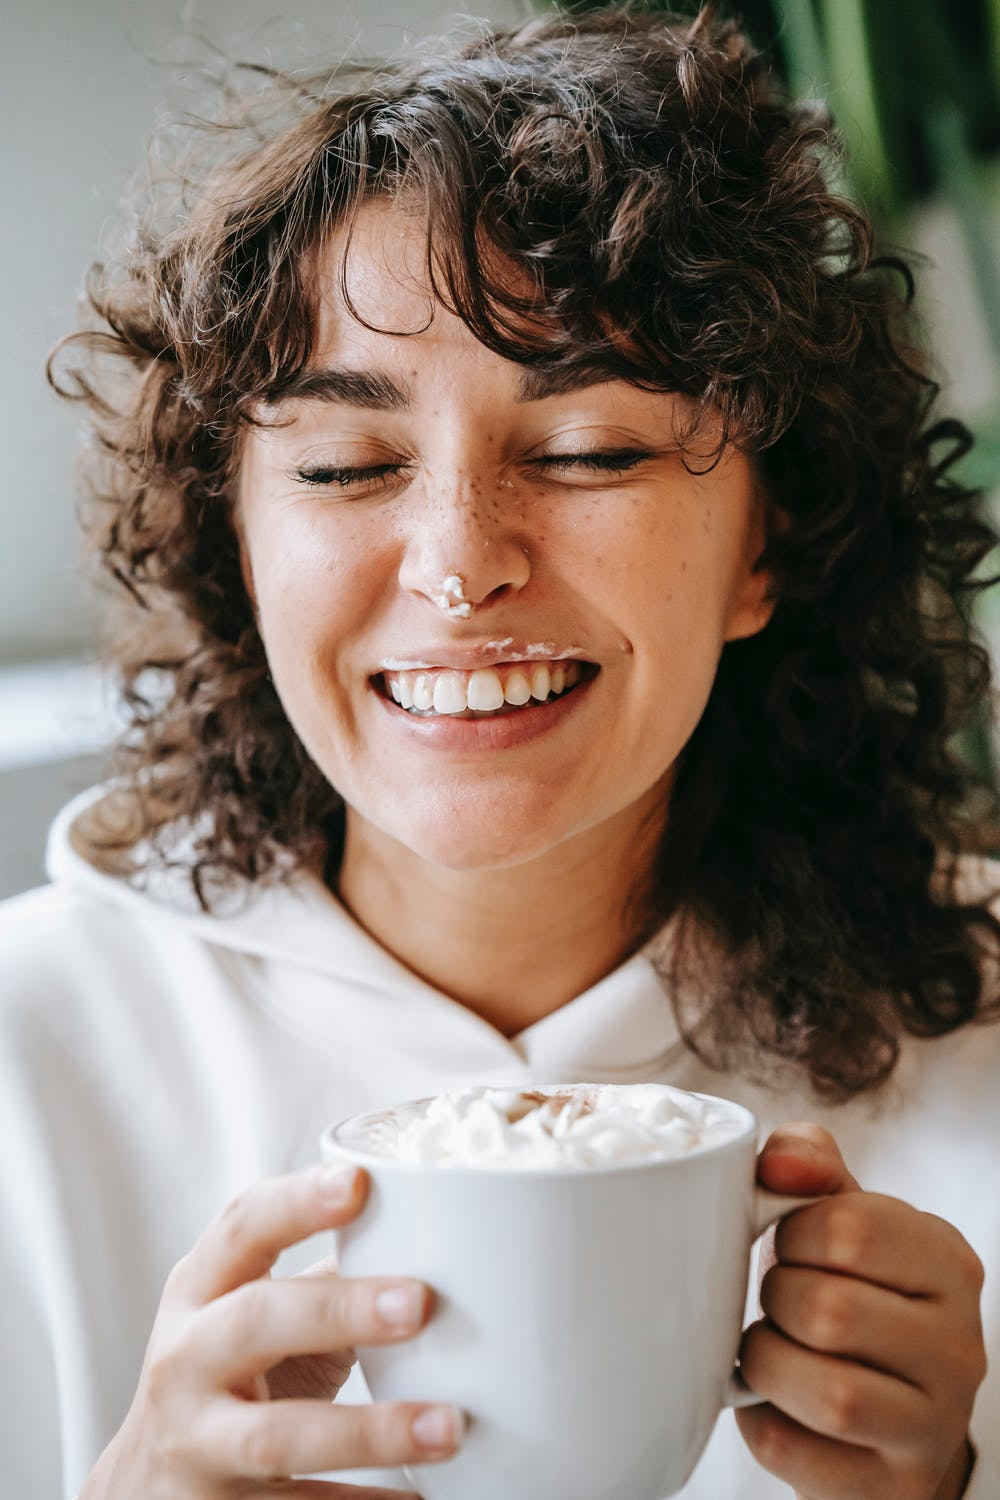 woman sipping hot chocolate with whipped cream on her nose